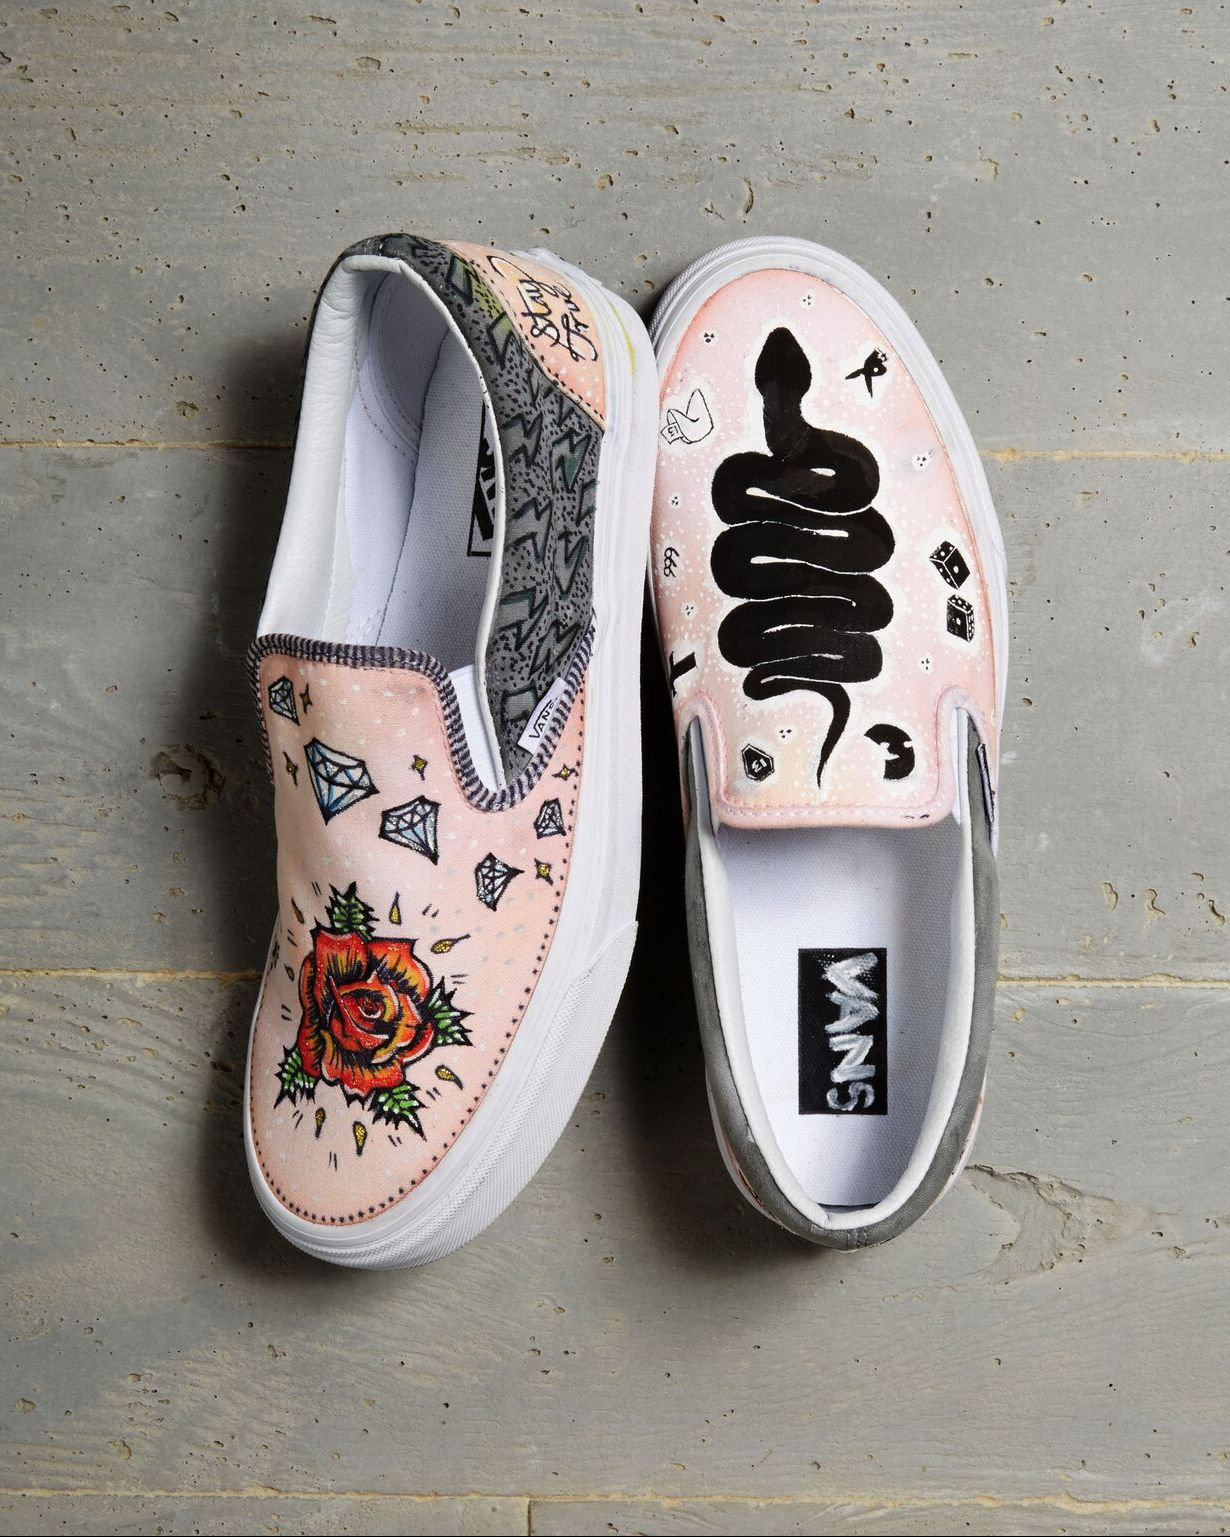 Elloway Vans AmbassadorAndi Shoes By Culture 2018 Custom MpqzGSUV